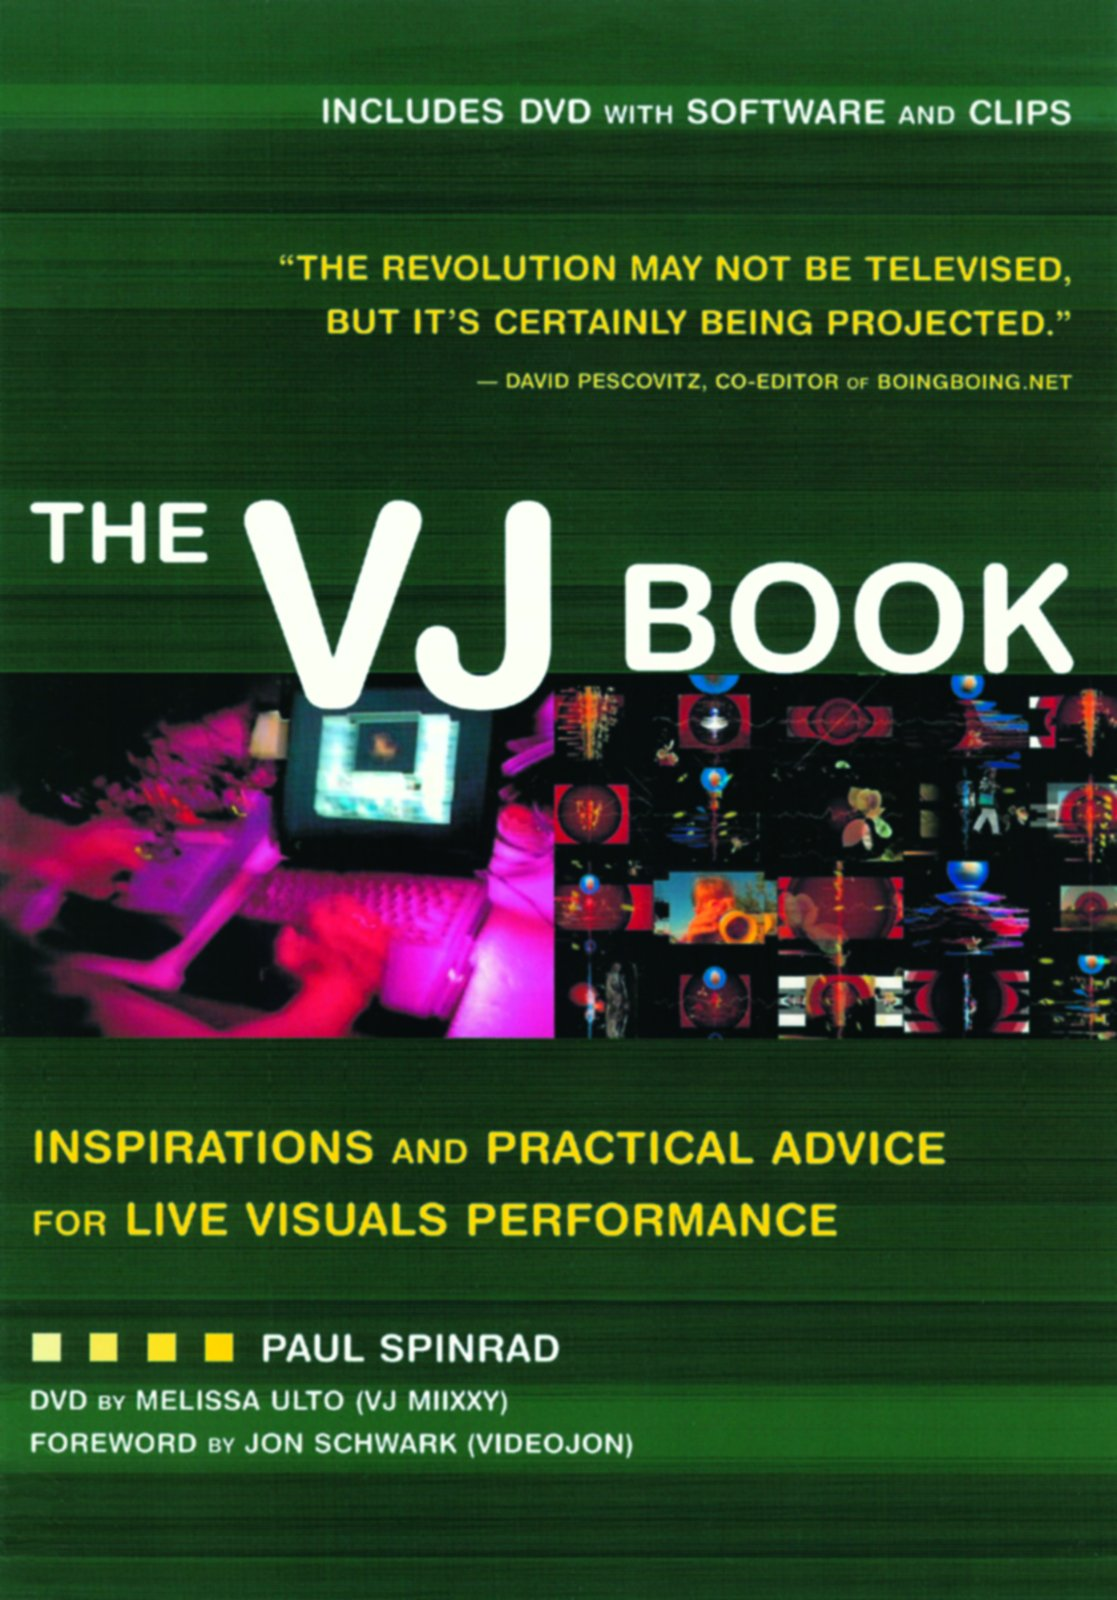 The VJ Book: Inspirations and Practical Advice for Live